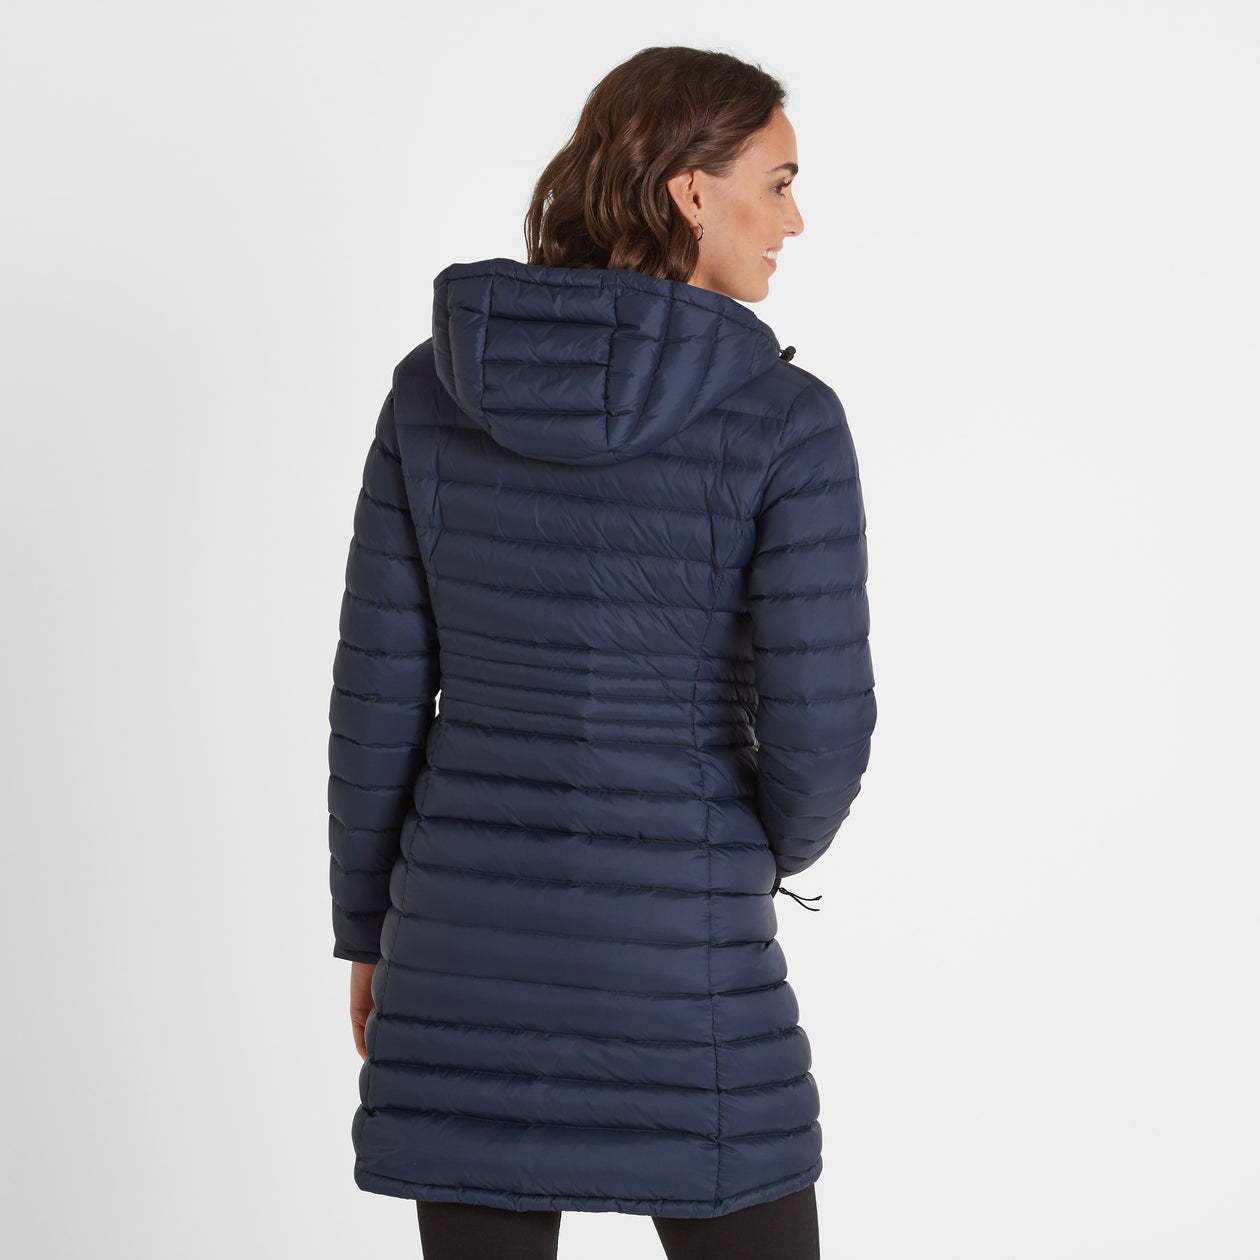 Denby Womens Down Jacket - Dark Indigo image 4